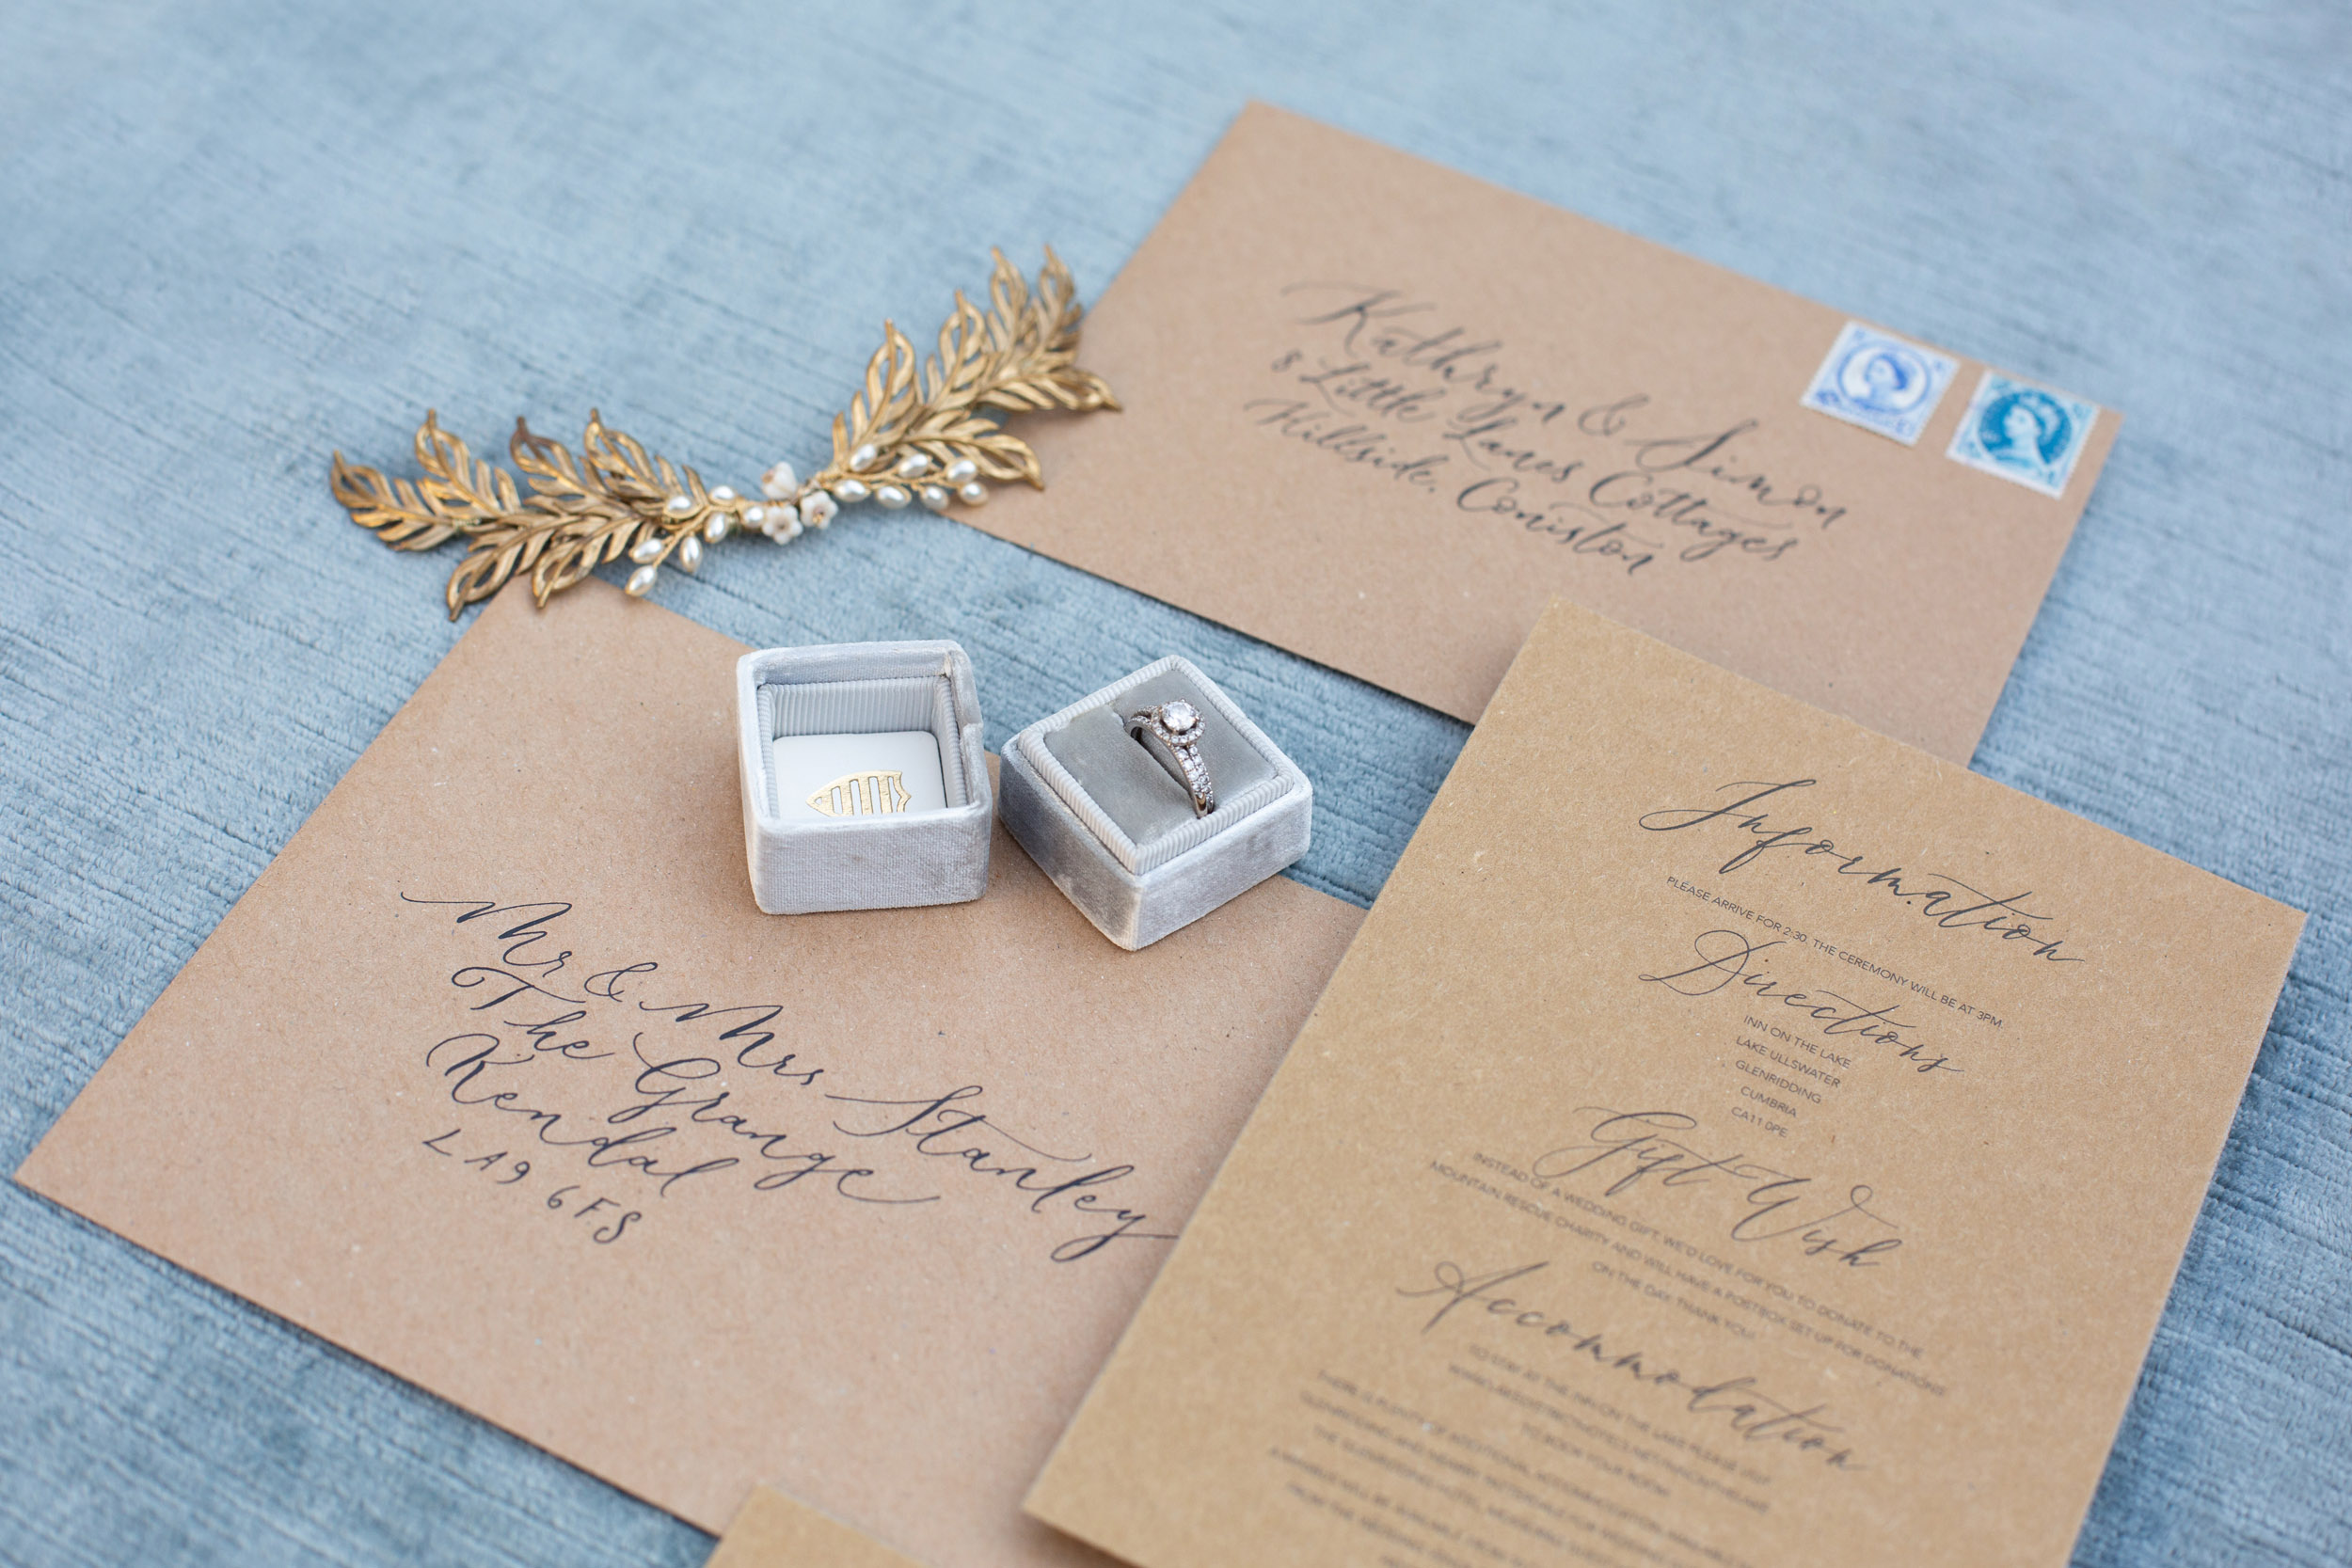 Rustic elegance sustainable wedding stationery from By Moon and Tide Calligraphy, photography credit Jess Reeve (2)